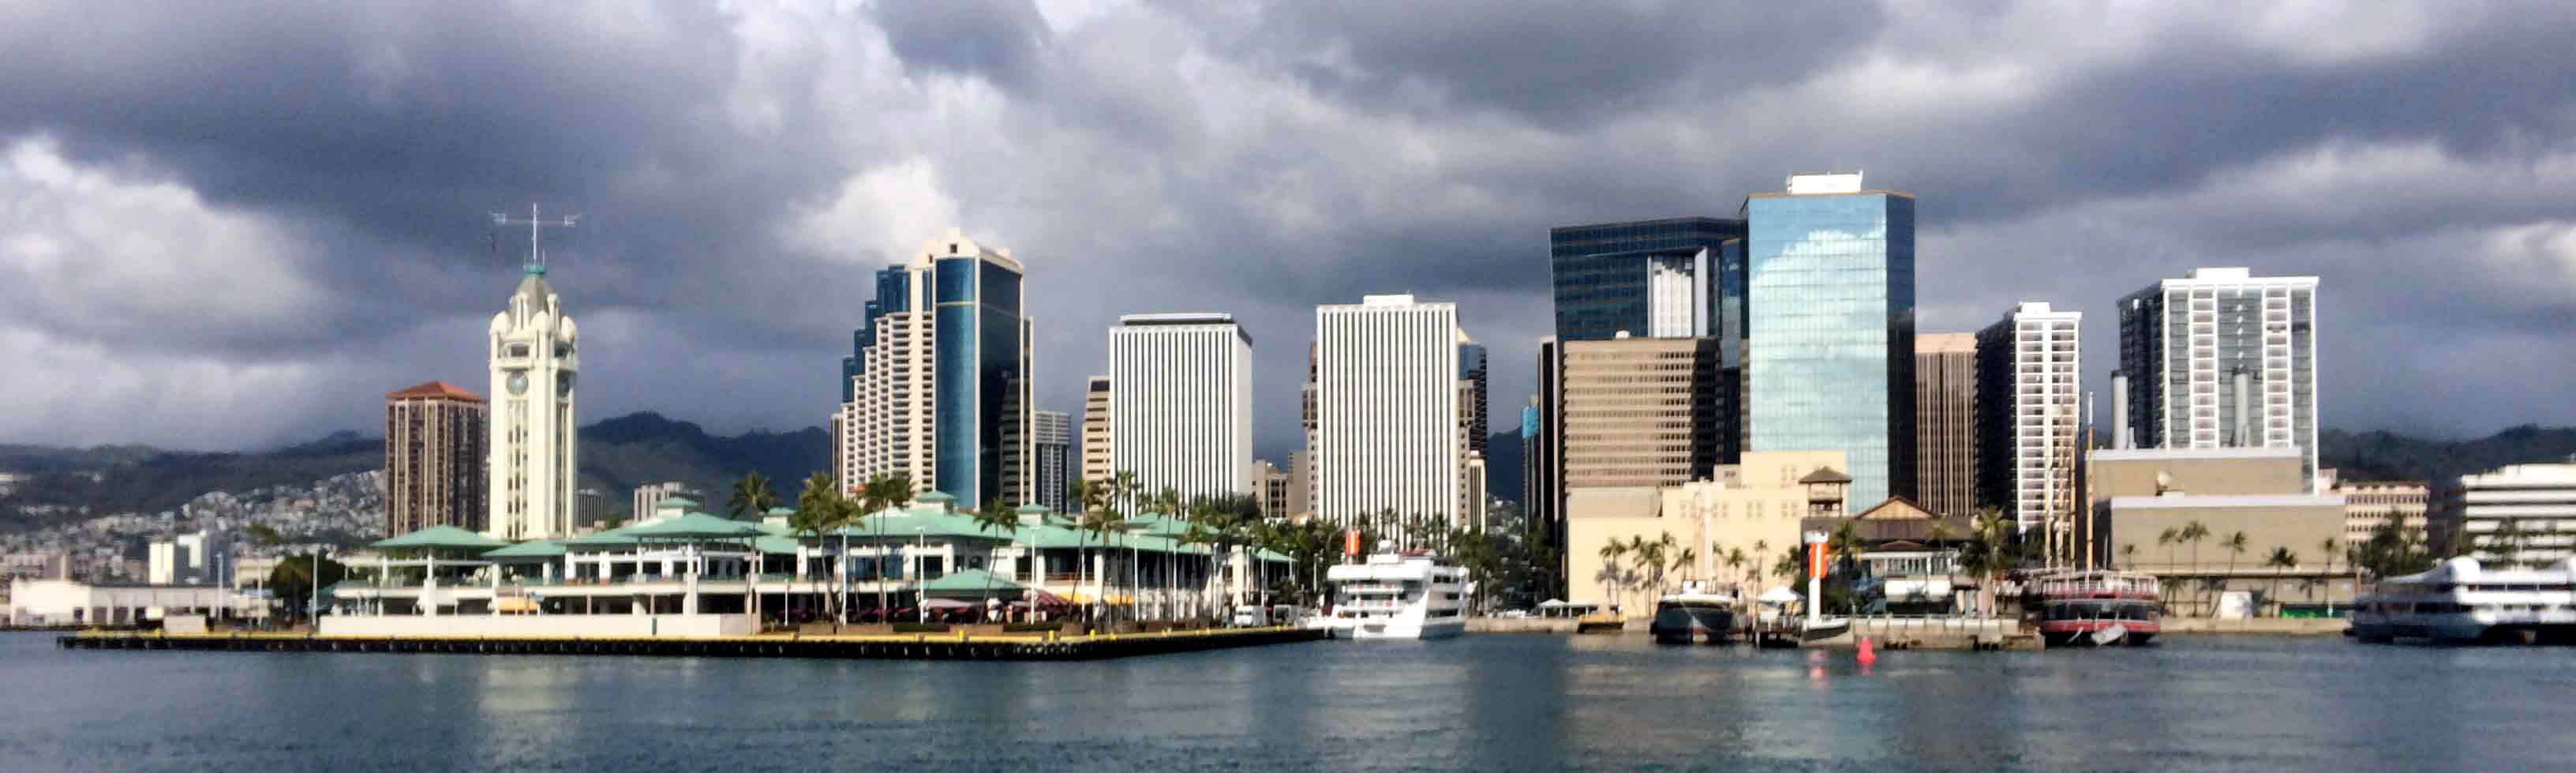 Honolulu Maritime & Ocean Injury Lawyer Bill Lawson